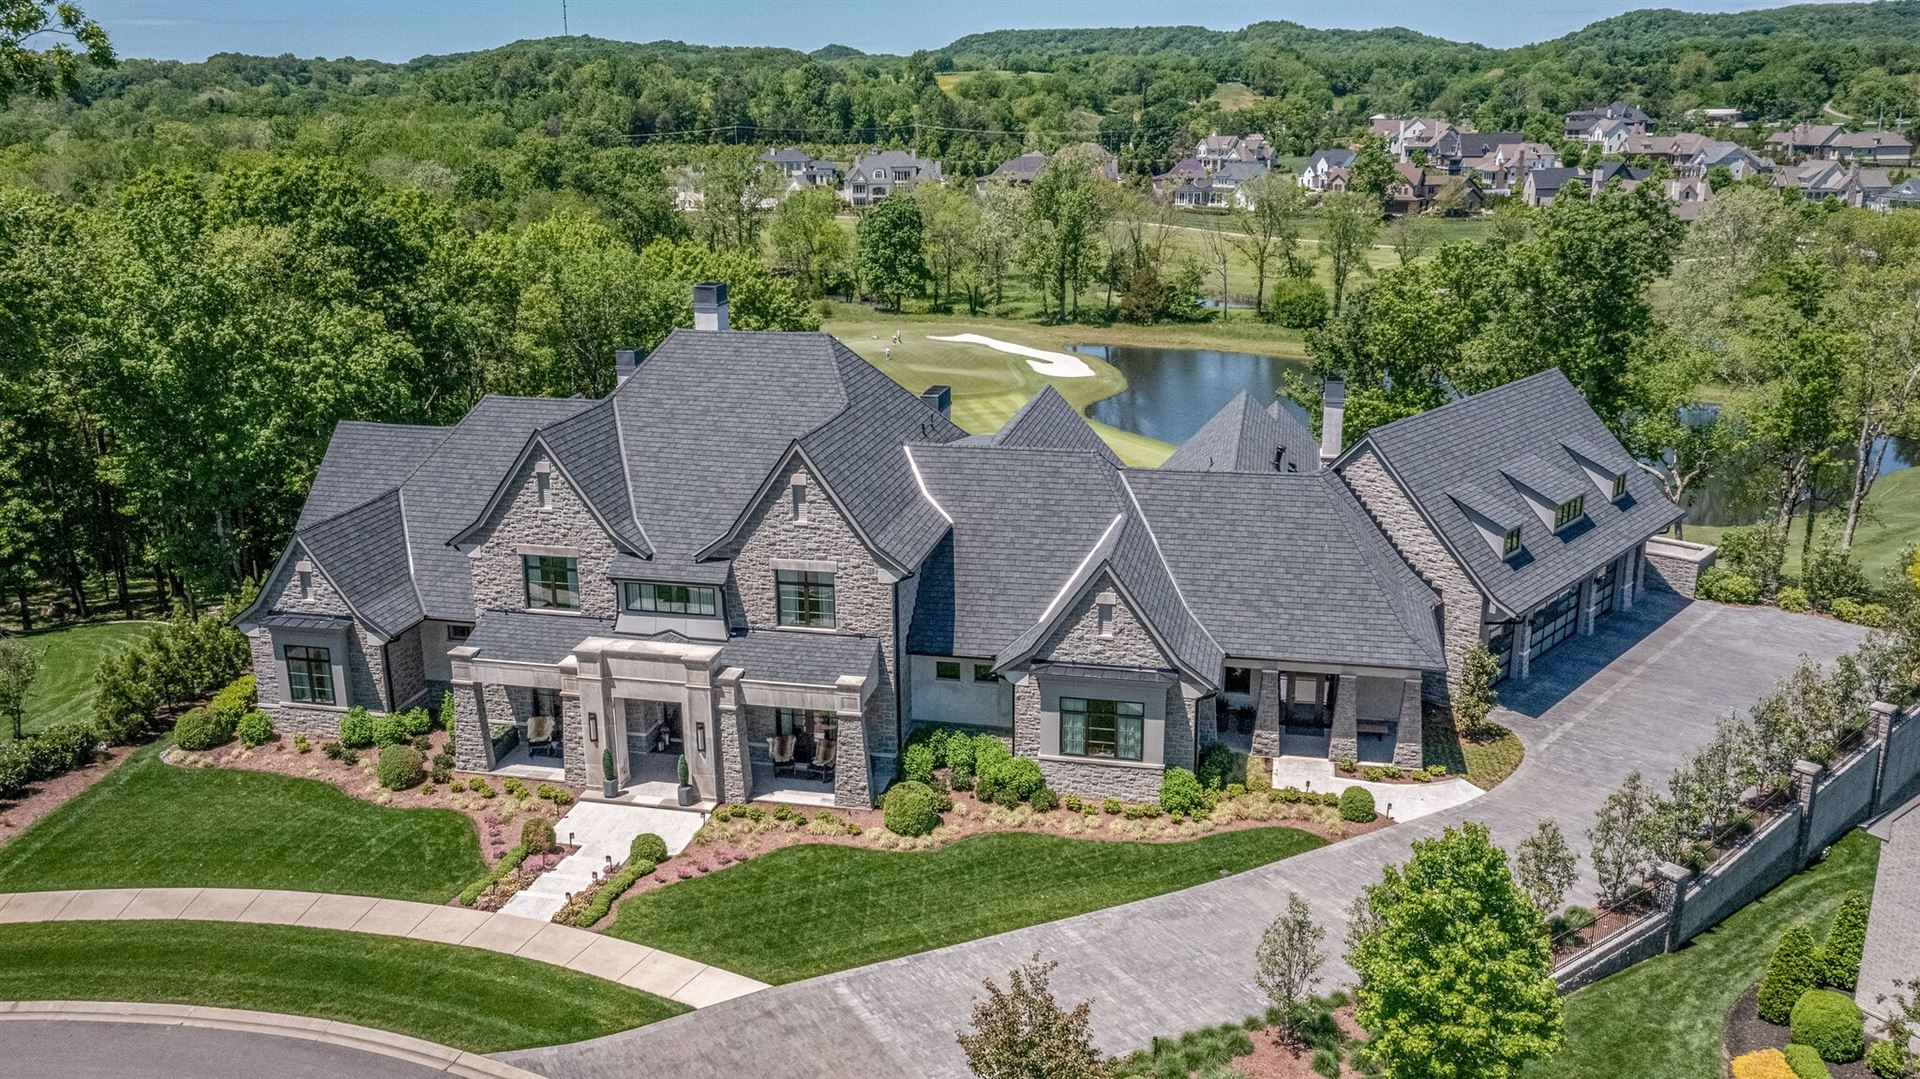 8131 Mountaintop Dr, College Grove, TN 37046 - MLS#: 2234674